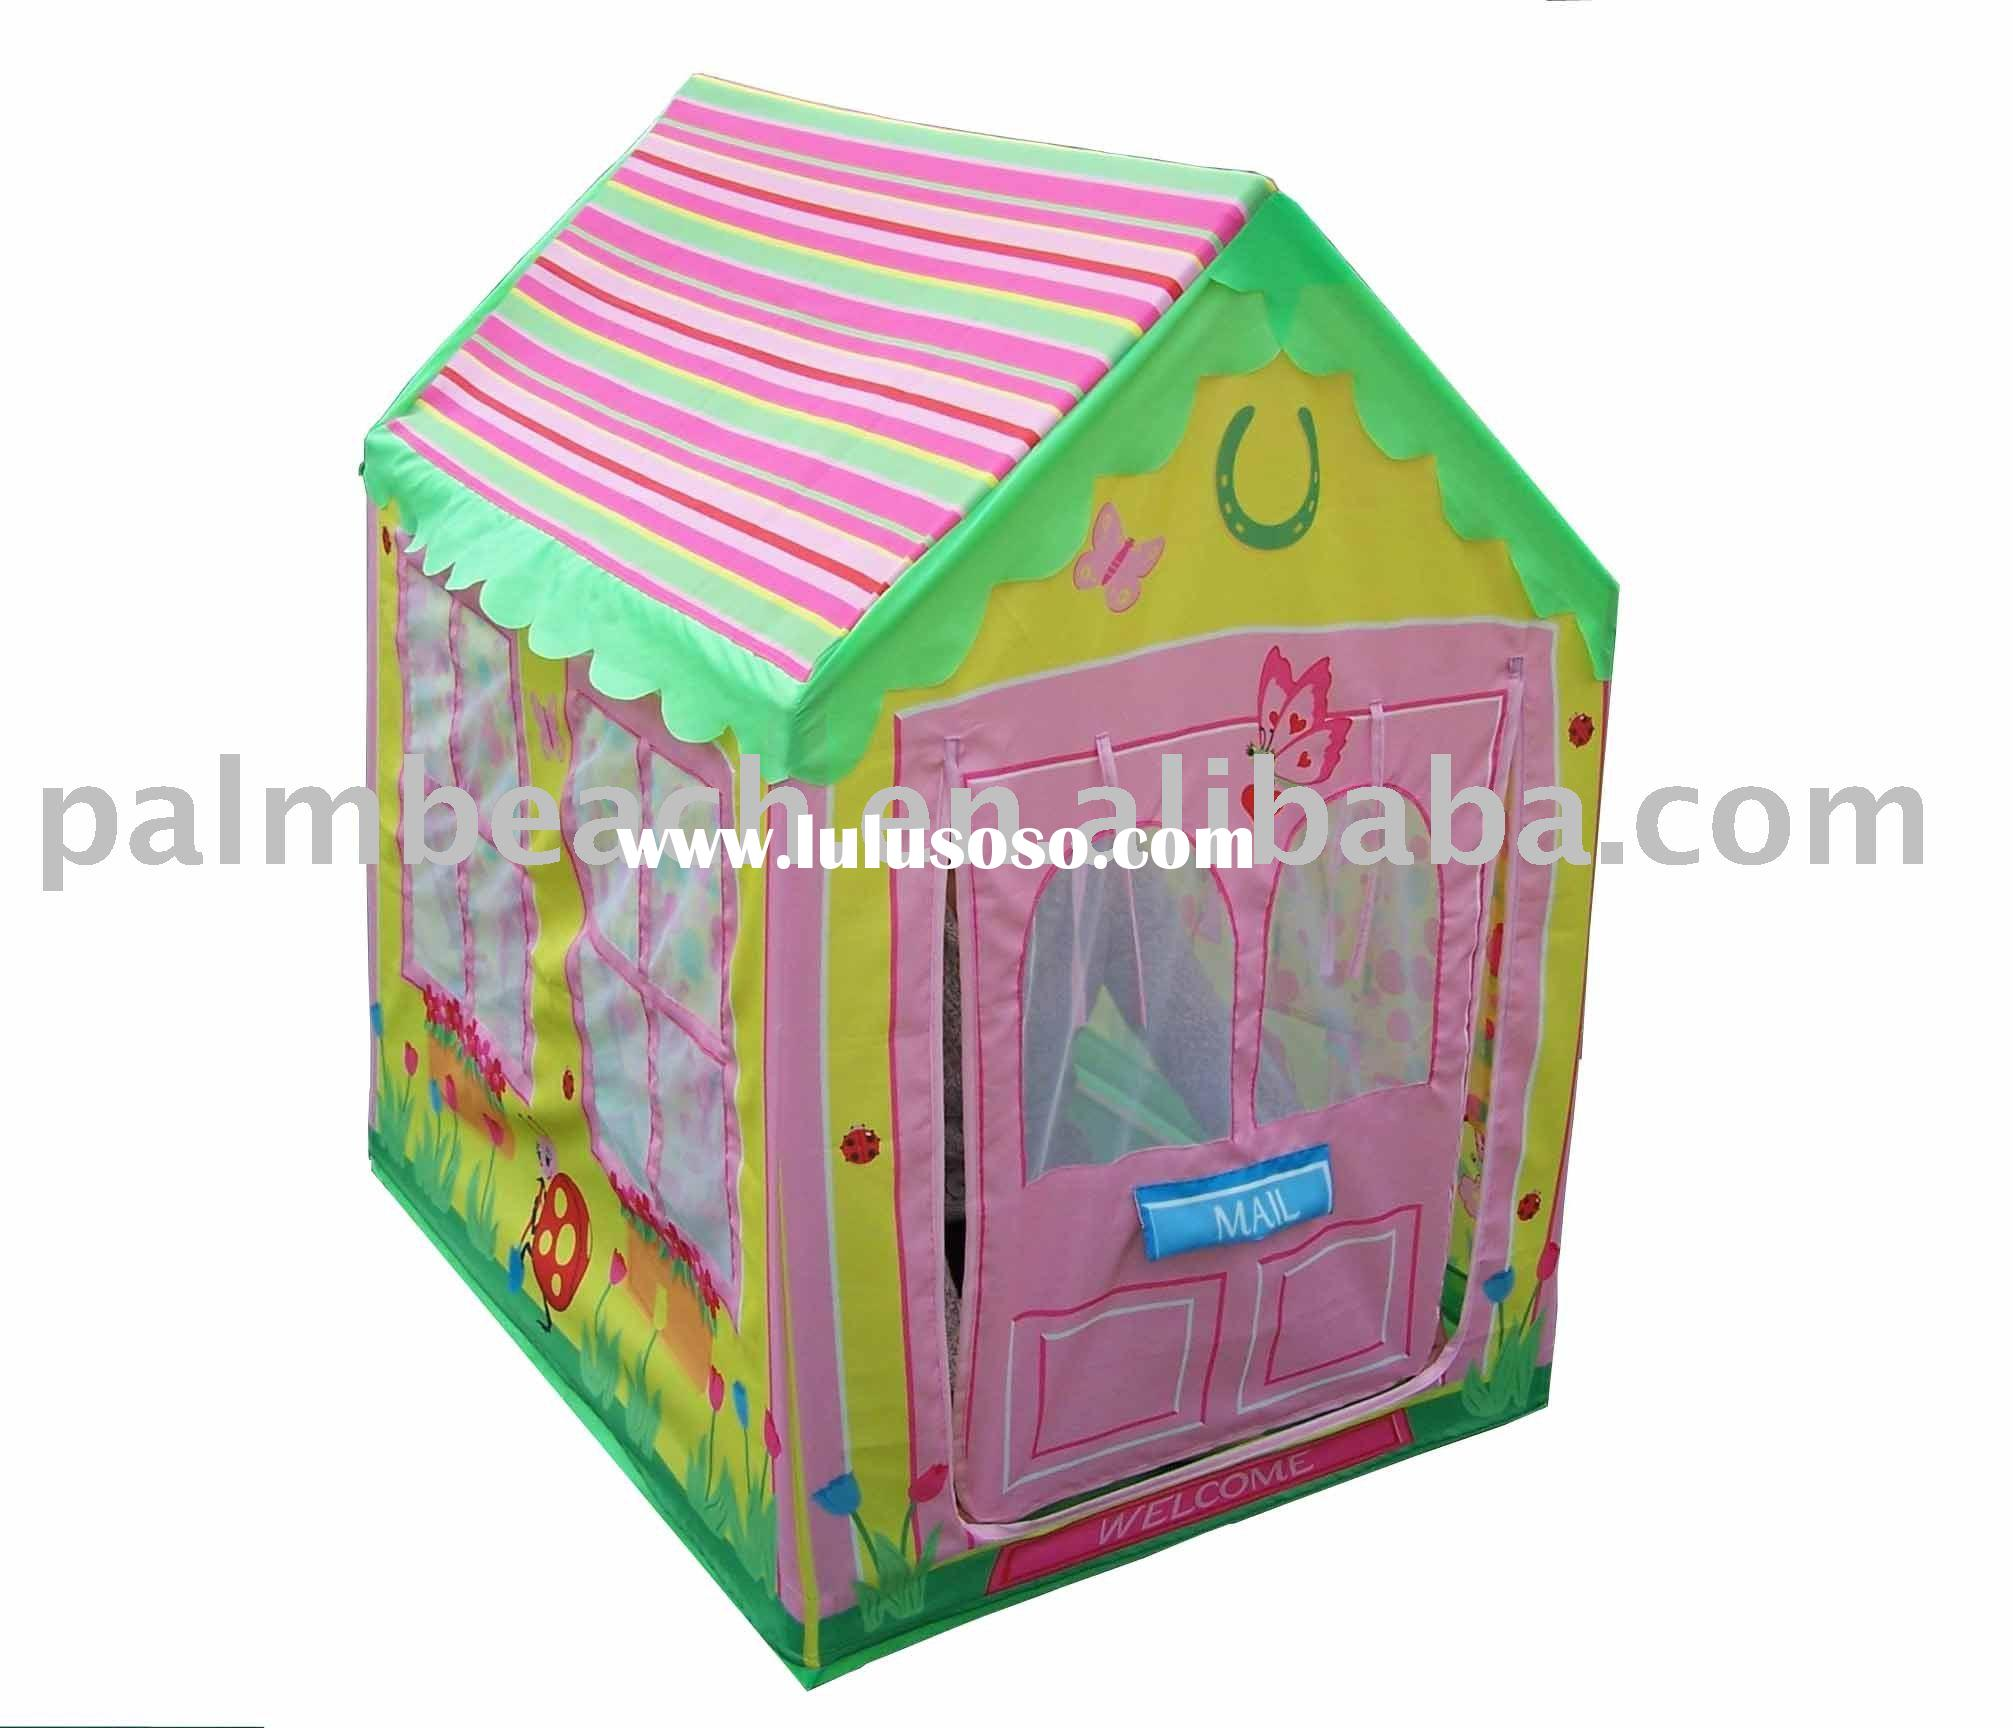 play tent/play house/kids tent/kids house/play toys/kid toys/children tent/pop up tent